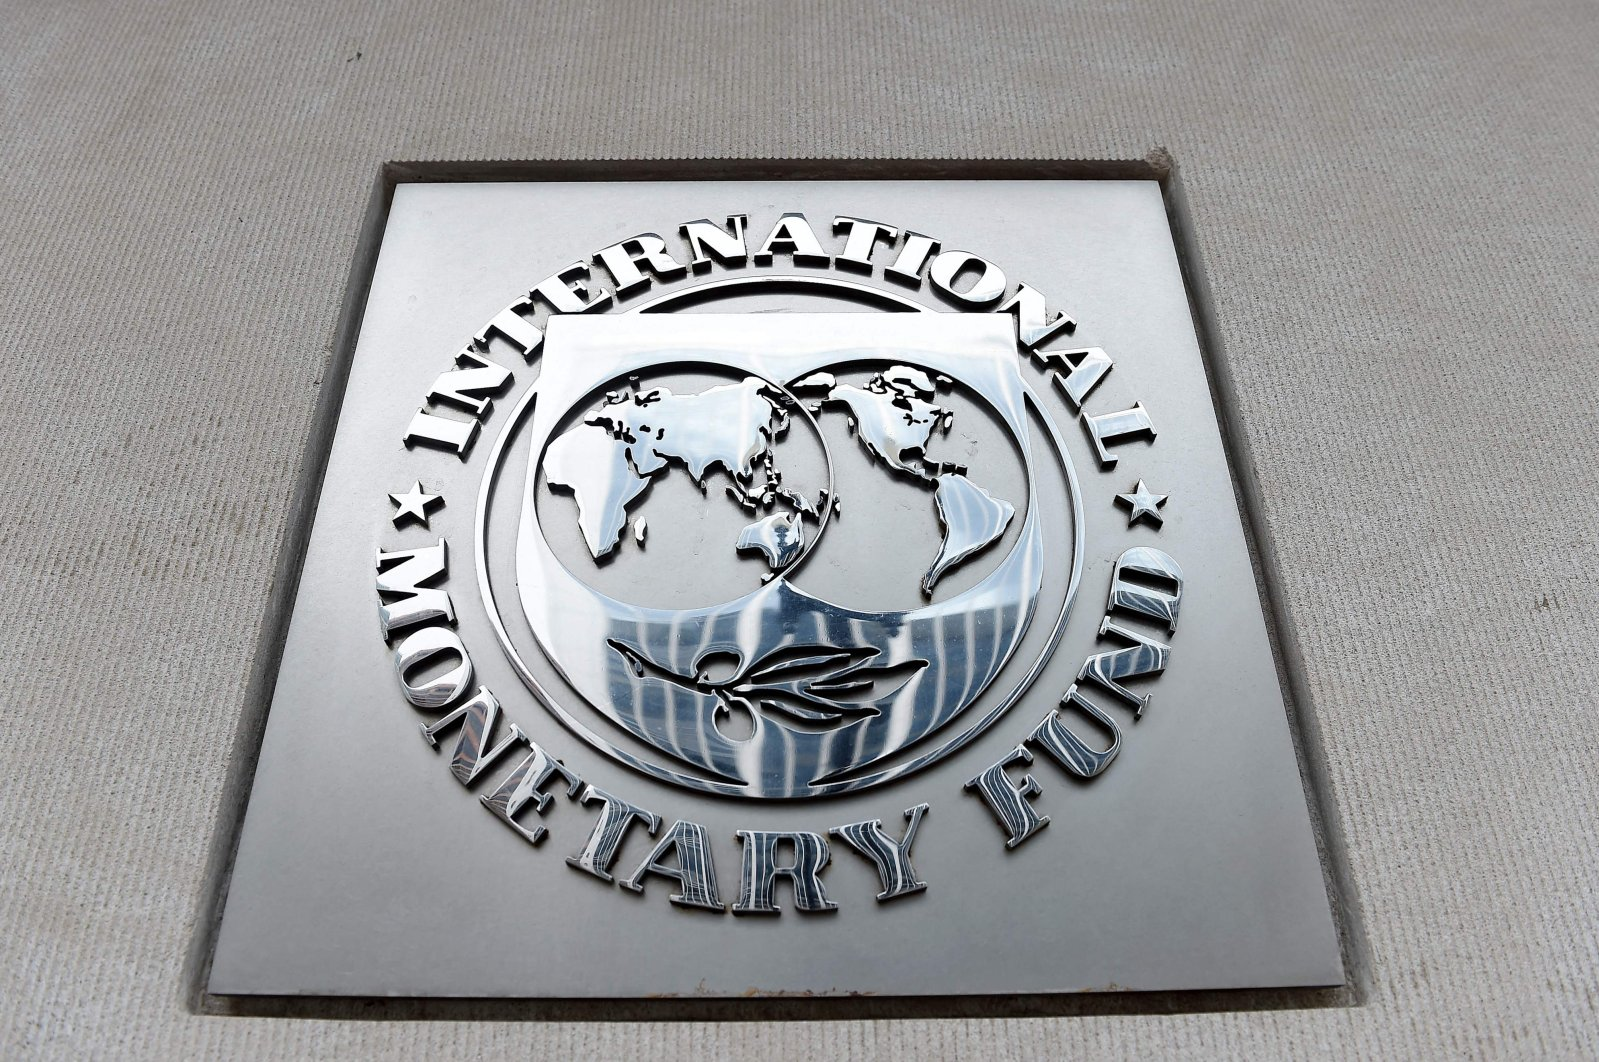 An exterior view of the building of the International Monetary Fund (IMF) is seen in Washington, D.C., U.S., March 27, 2020. (AFP Photo)